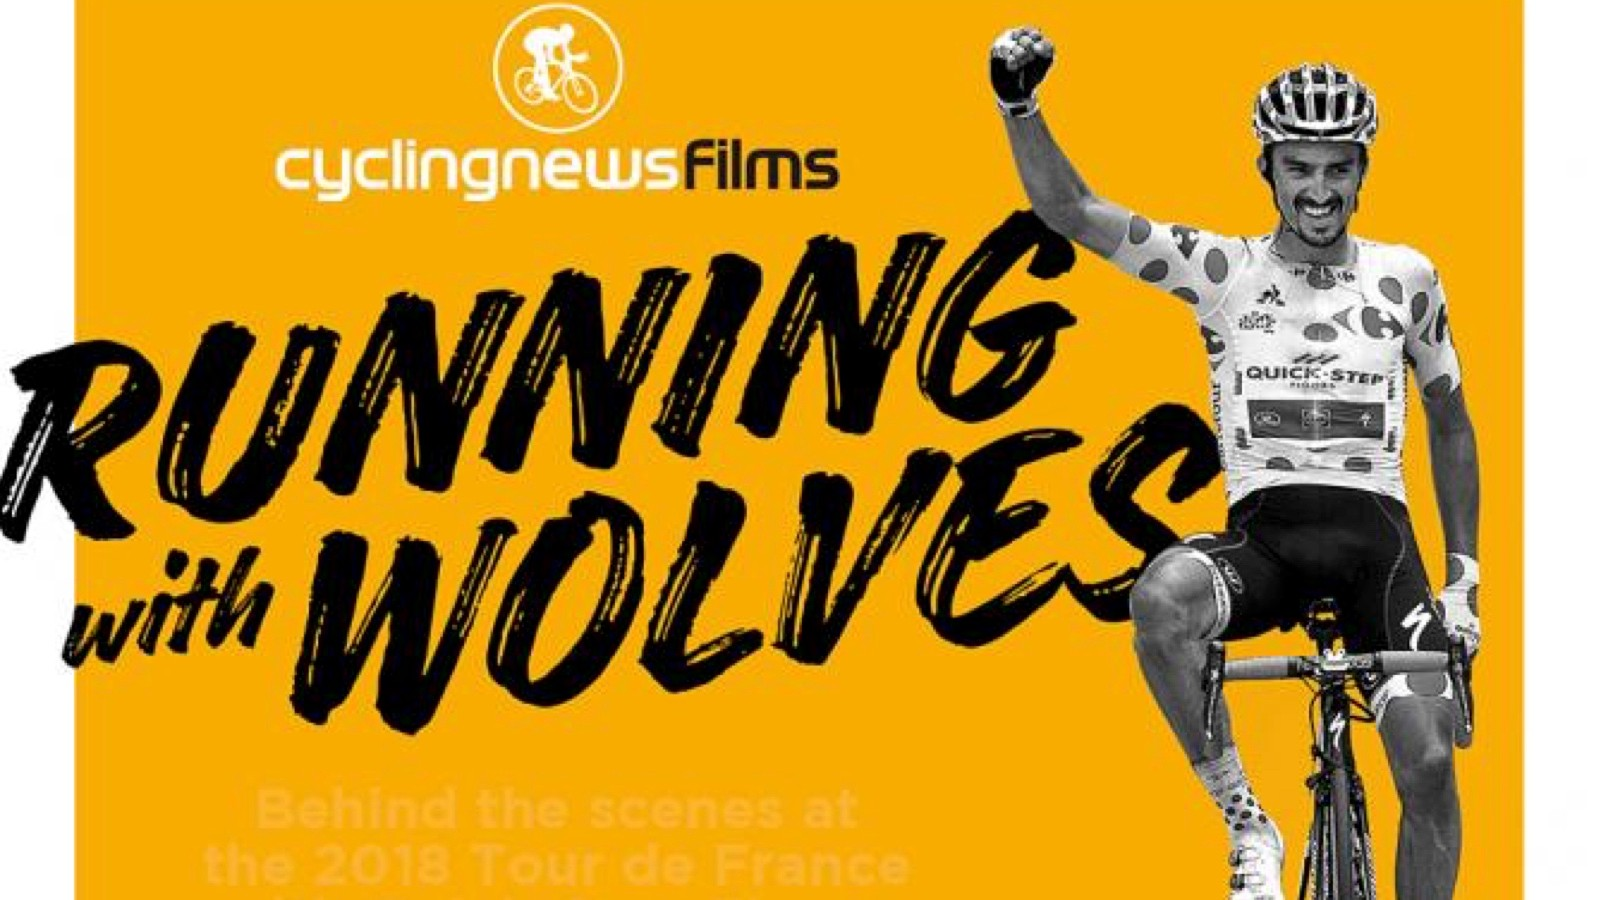 Running with Wolves is the latest film from Cyclingnews Films